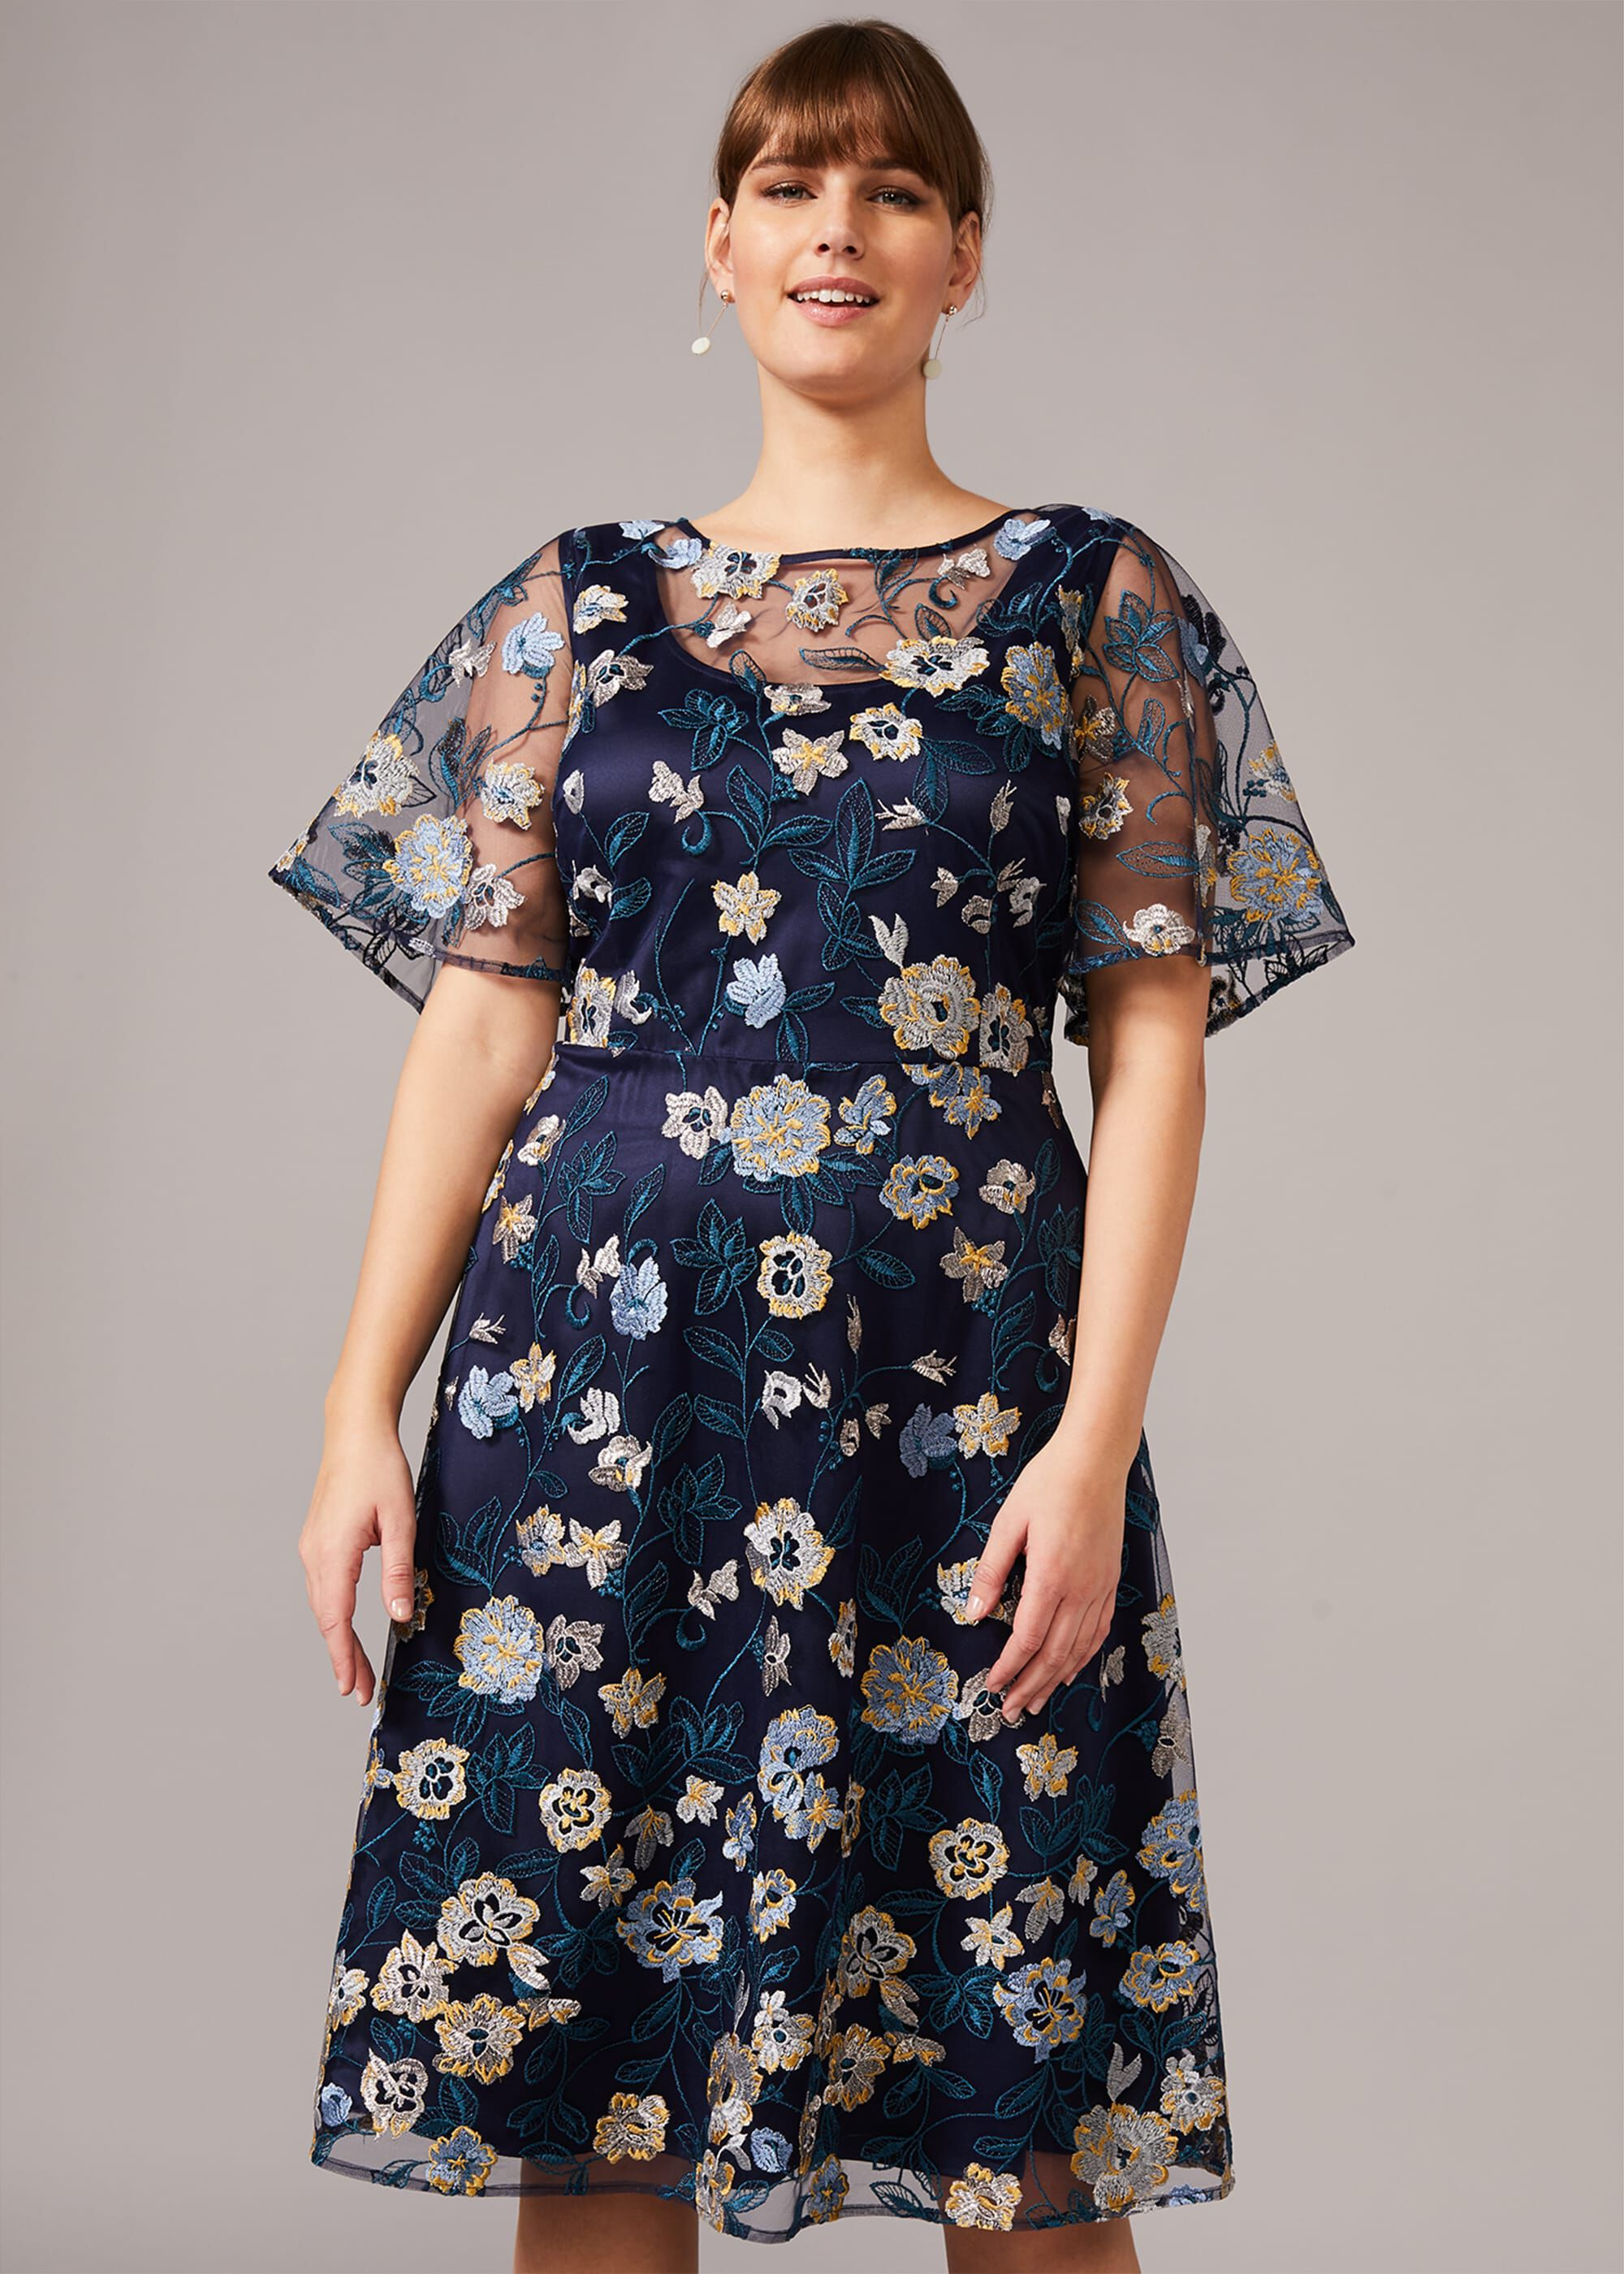 Studio 8 Steff Floral Embroidered Dress, Blue, Fit & Flare, Occasion Dress